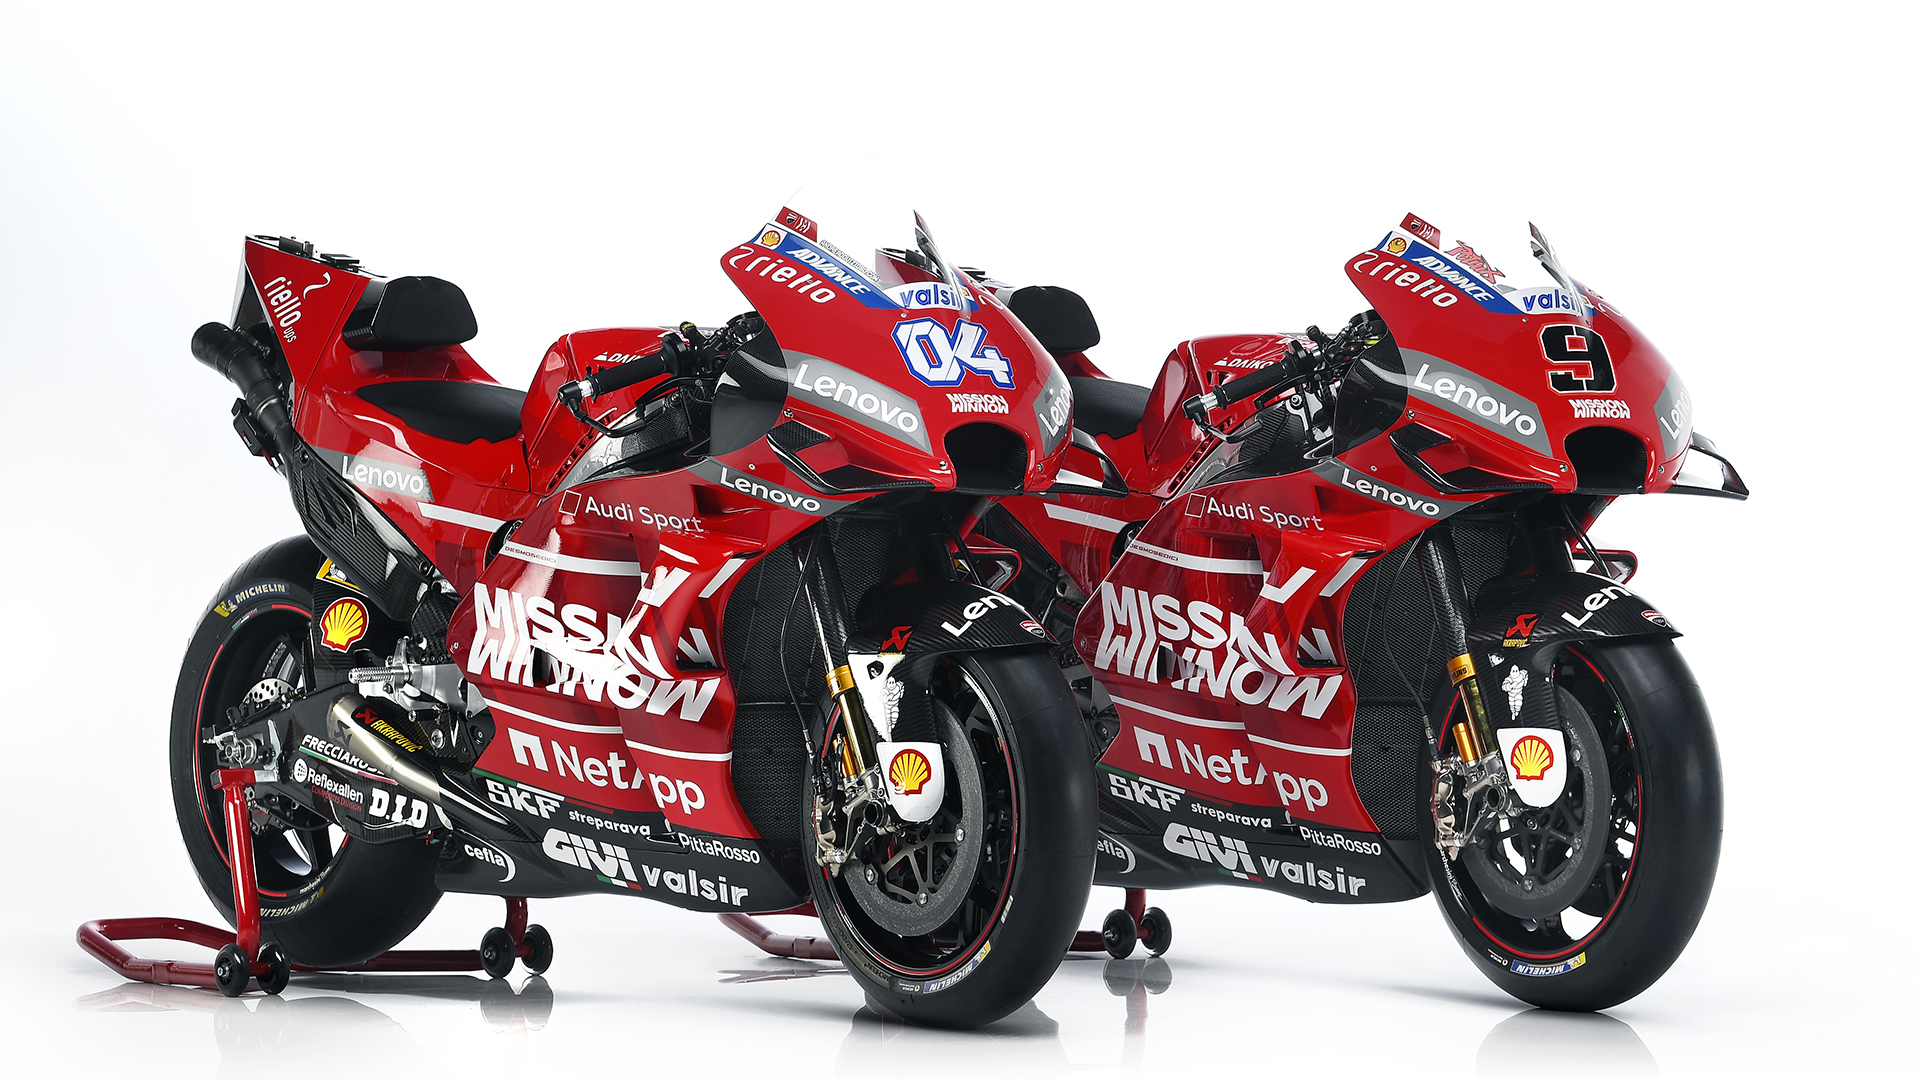 Ducati Team MotoGP: Bike